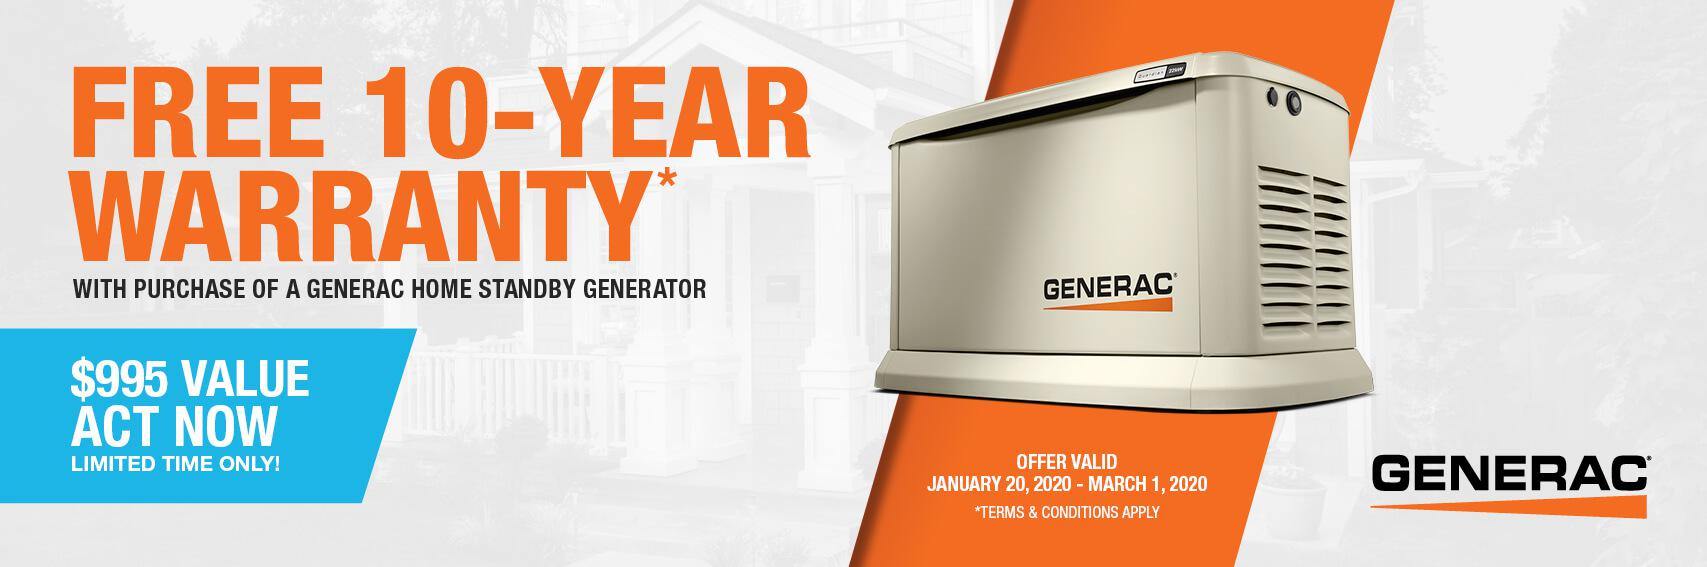 Homestandby Generator Deal | Warranty Offer | Generac Dealer | LOUISVILLE, KY